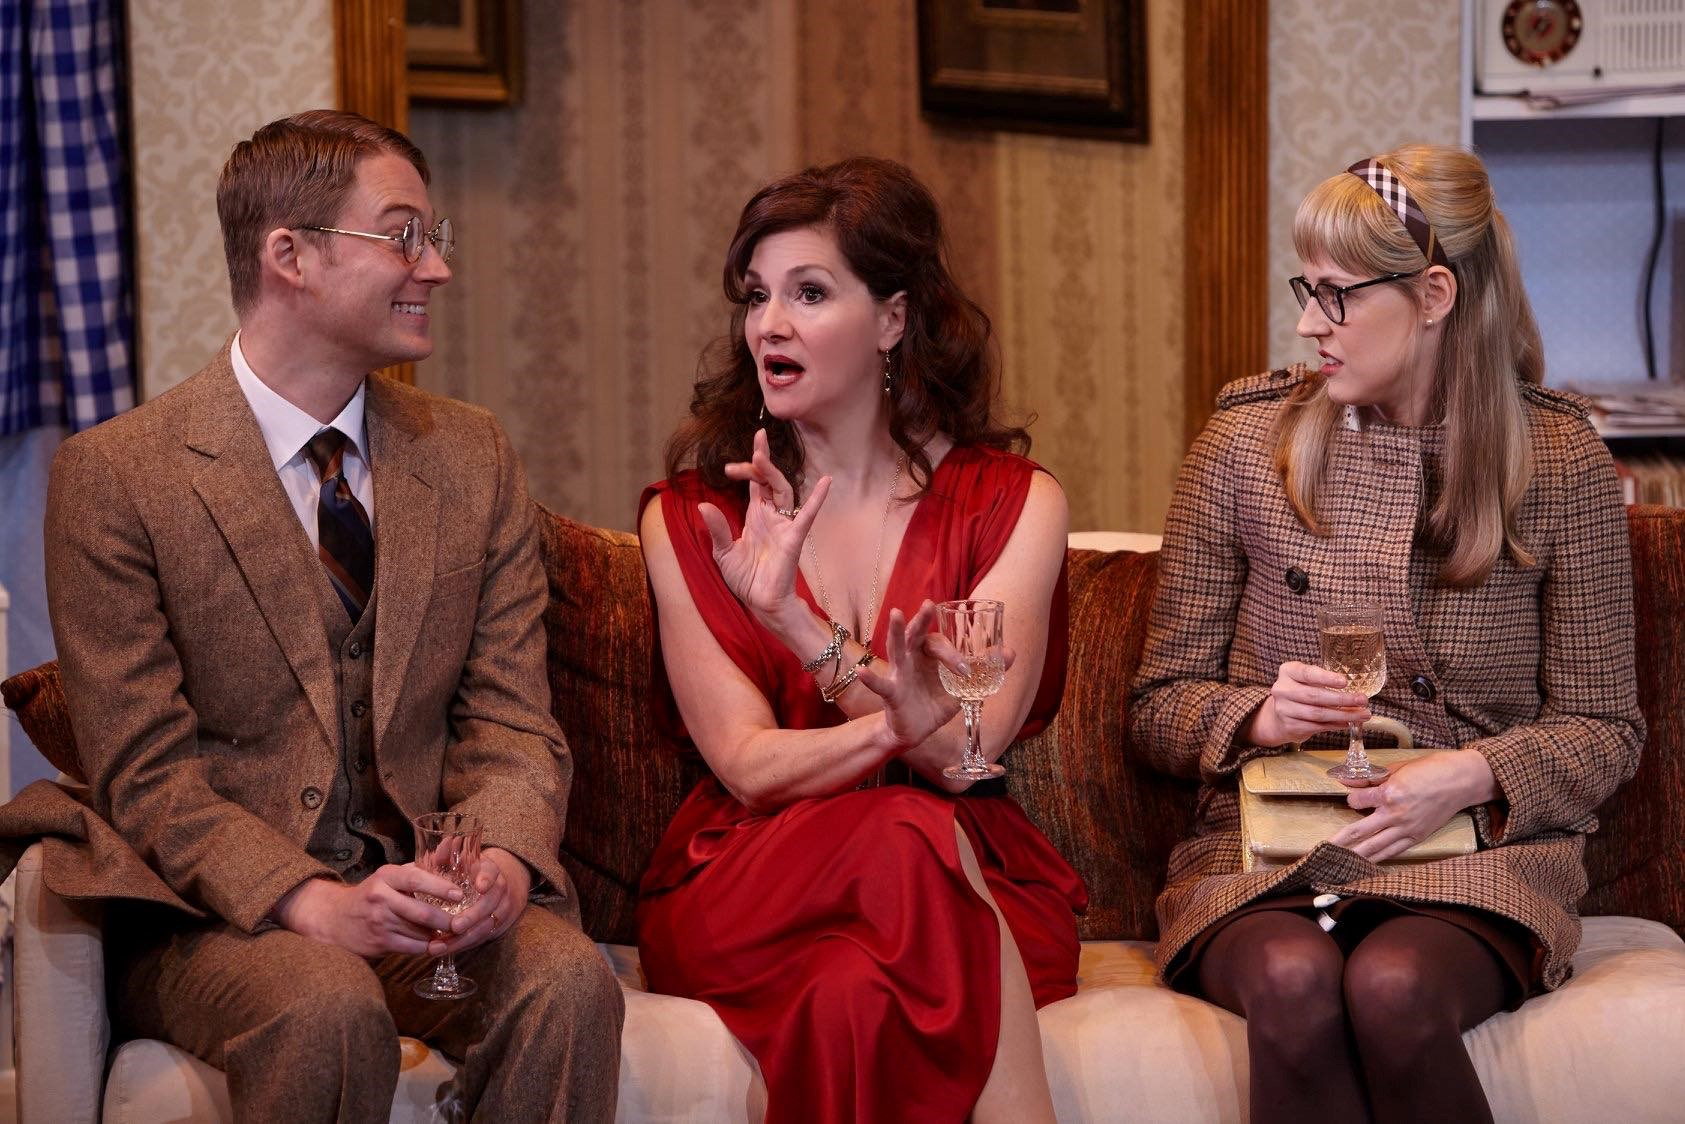 Ben Cole, Jacquelyn Ritz, Noelle Marion in How the Other Half Loves